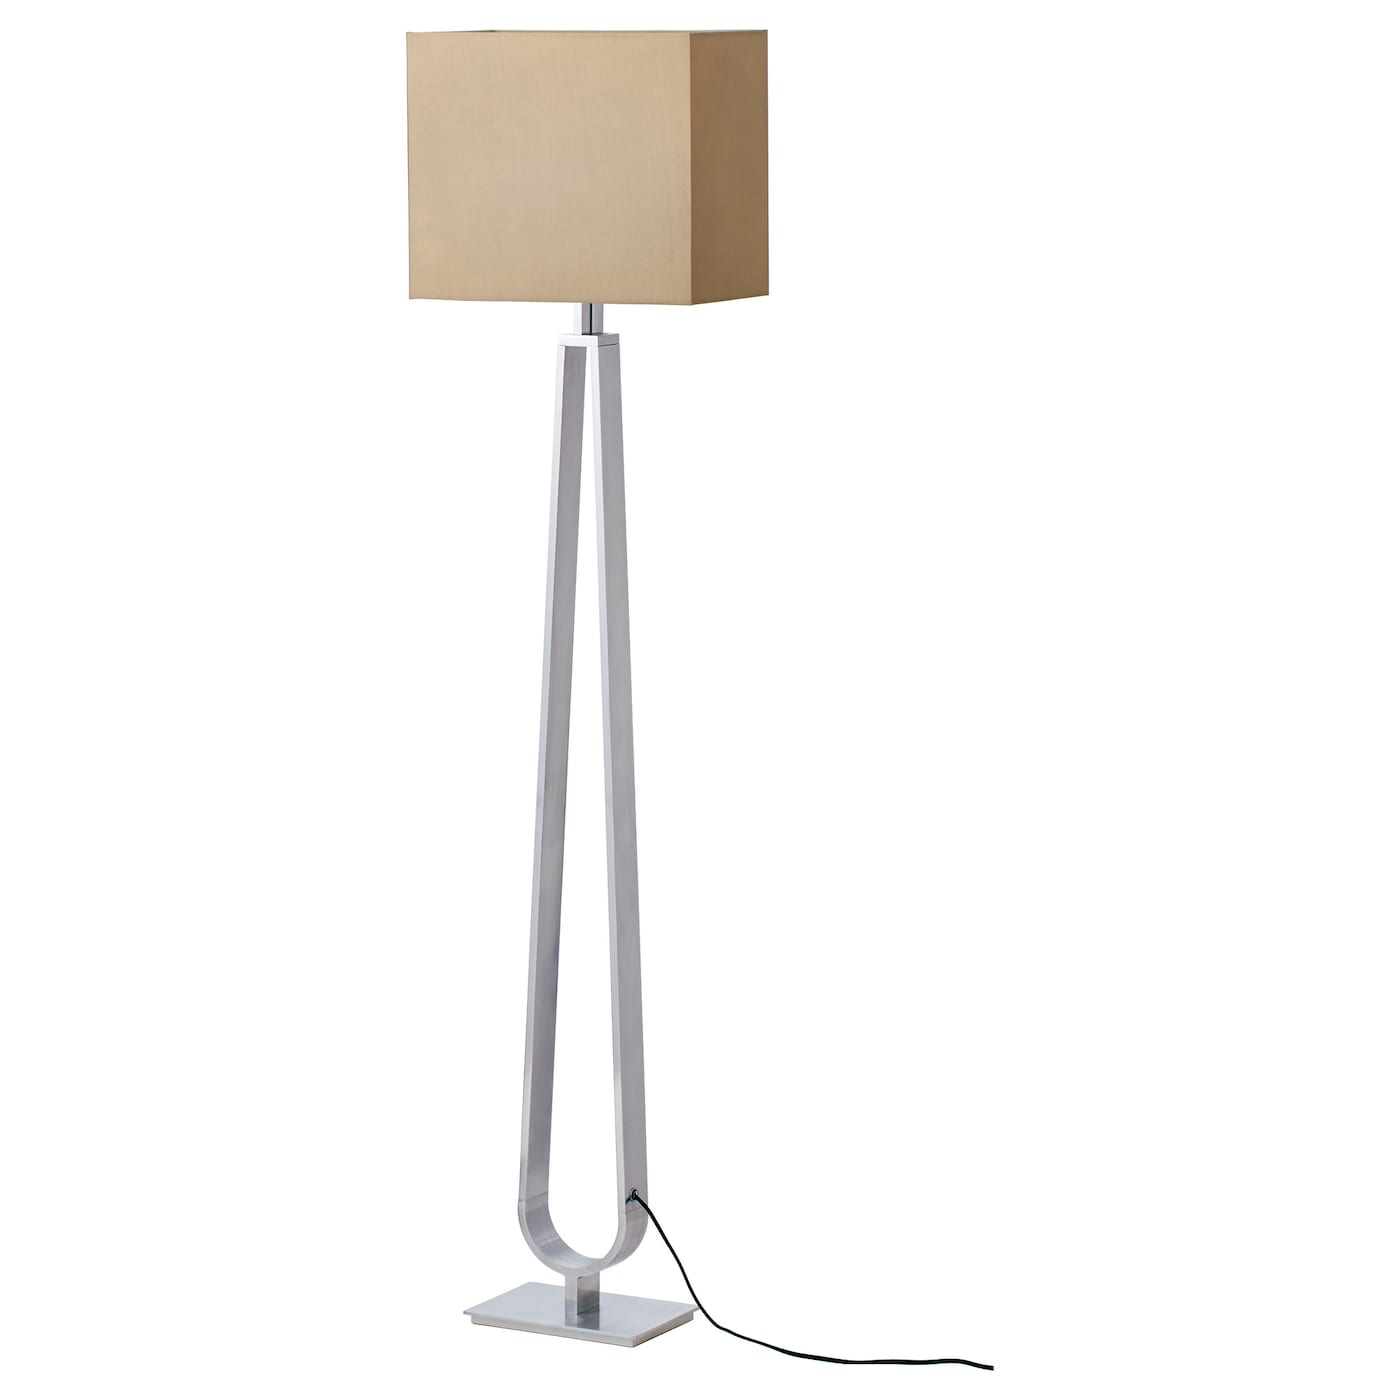 floor lamps  standard lamps  ikea - ikea klabb floor lamp helps lower your electric bill because dimming thelights saves energy